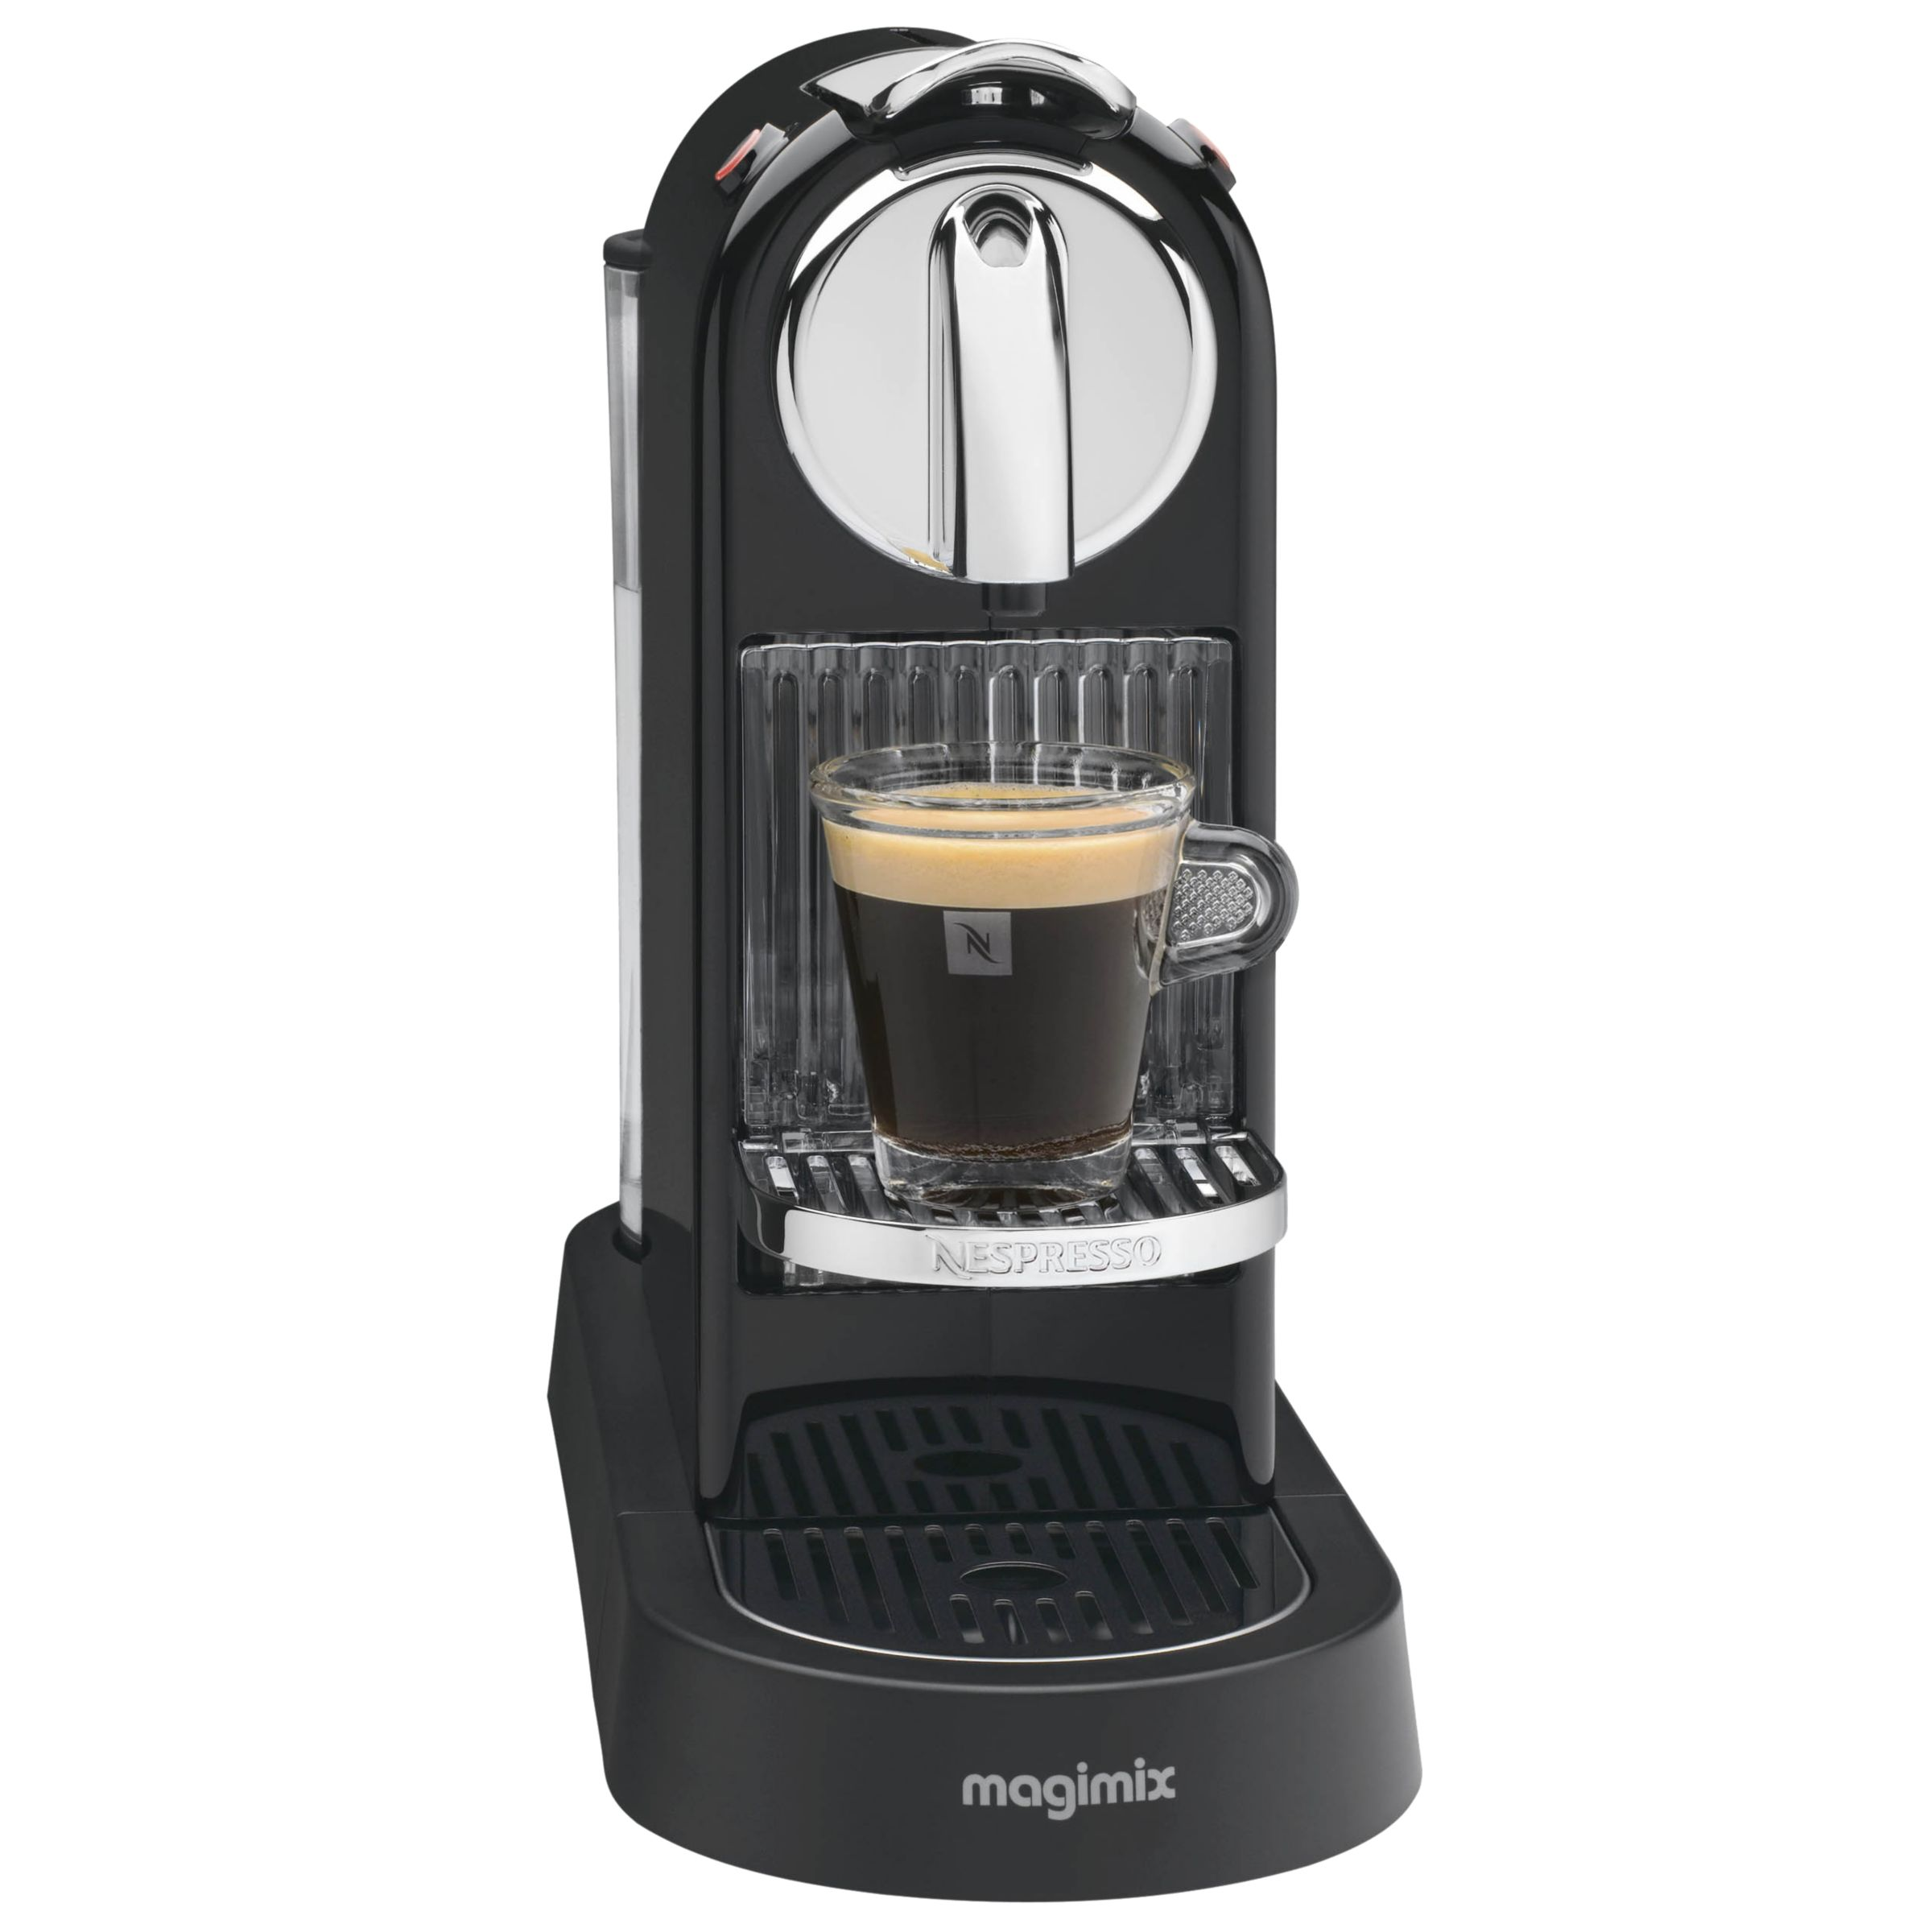 magimix nespresso citiz m190 coffee maker compare prices. Black Bedroom Furniture Sets. Home Design Ideas